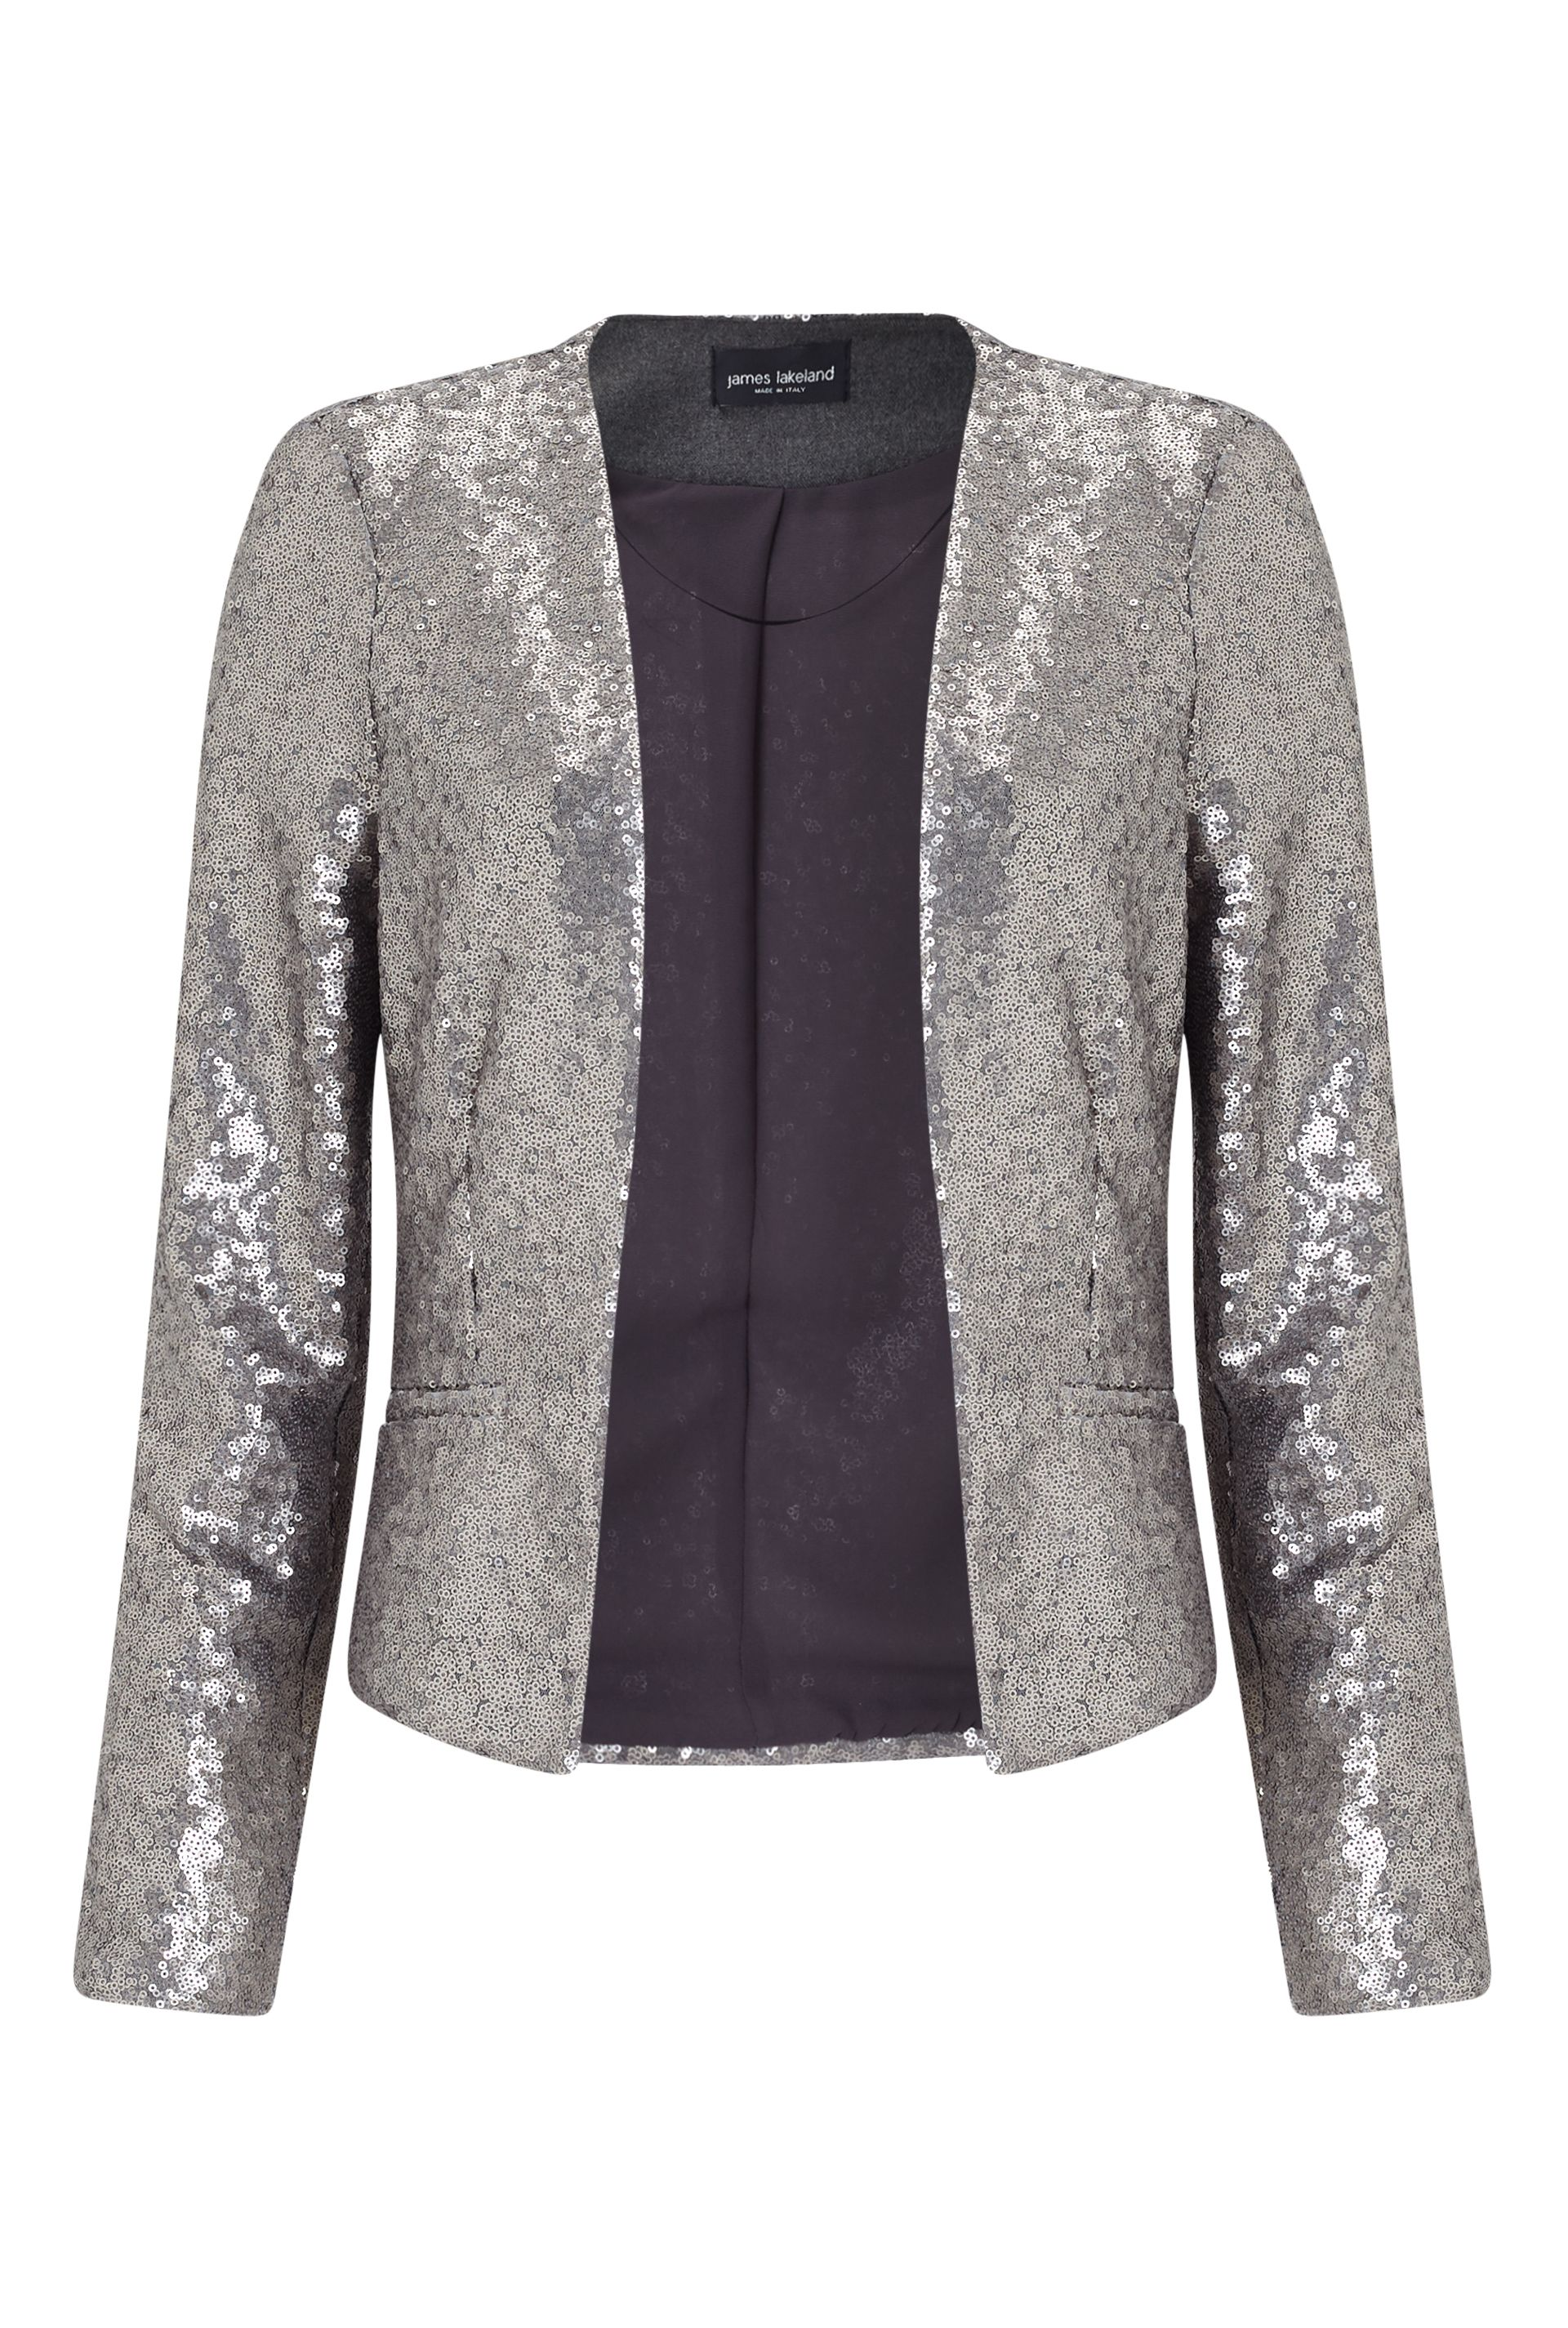 James Lakeland Sequins Jacket, Silver Silverlic